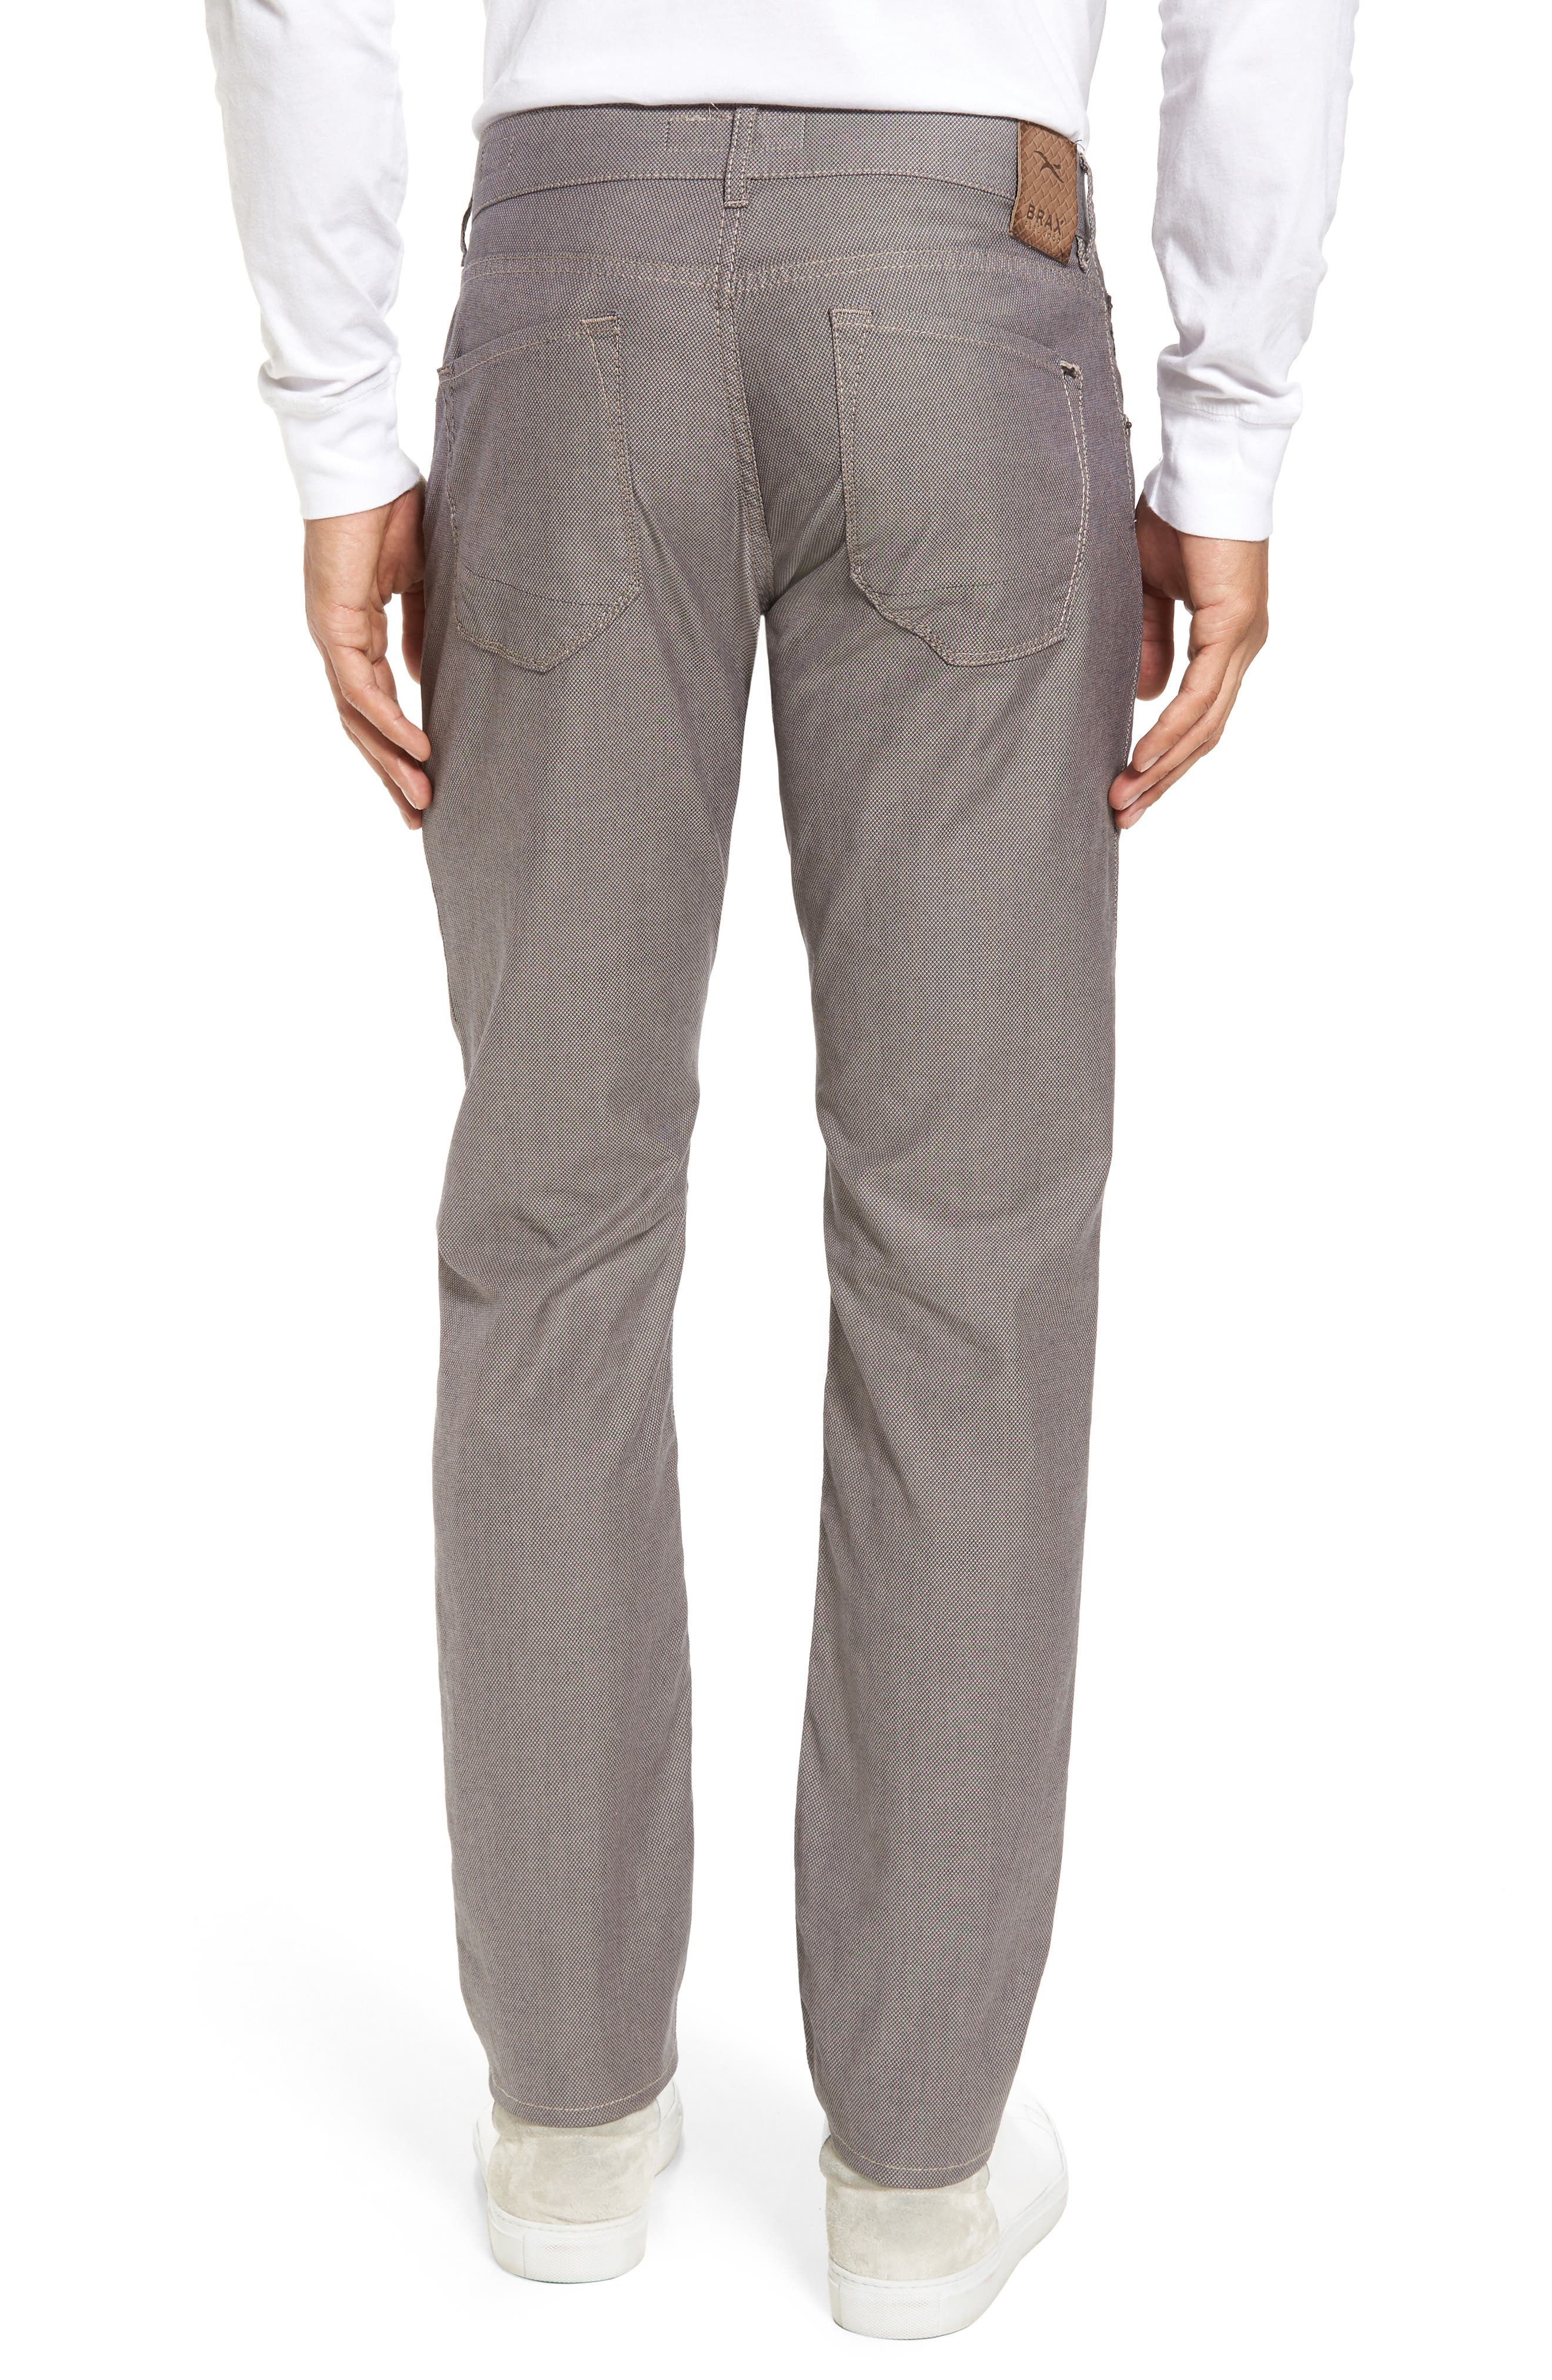 Chuck Stretch Cotton Pants,                             Alternate thumbnail 2, color,                             Beige